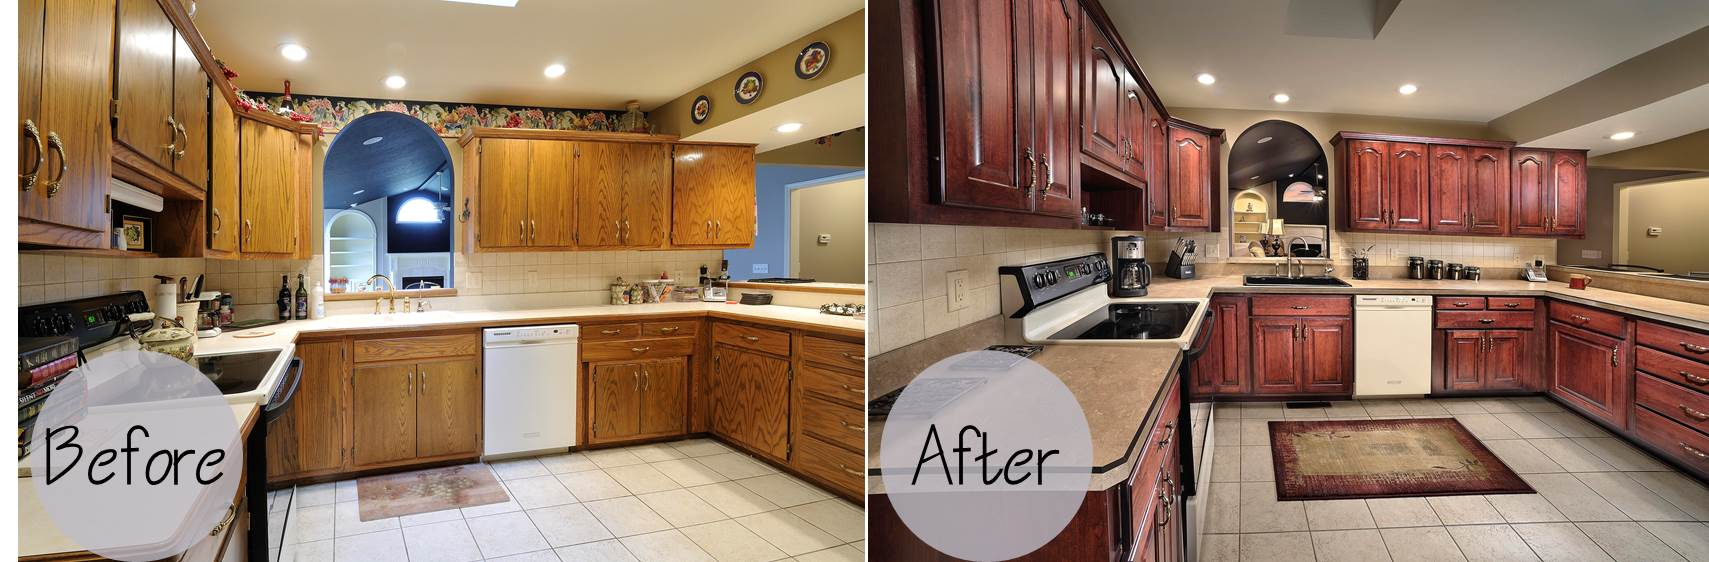 Cozy Schrock Before and After kitchen cabinet refacing before and after